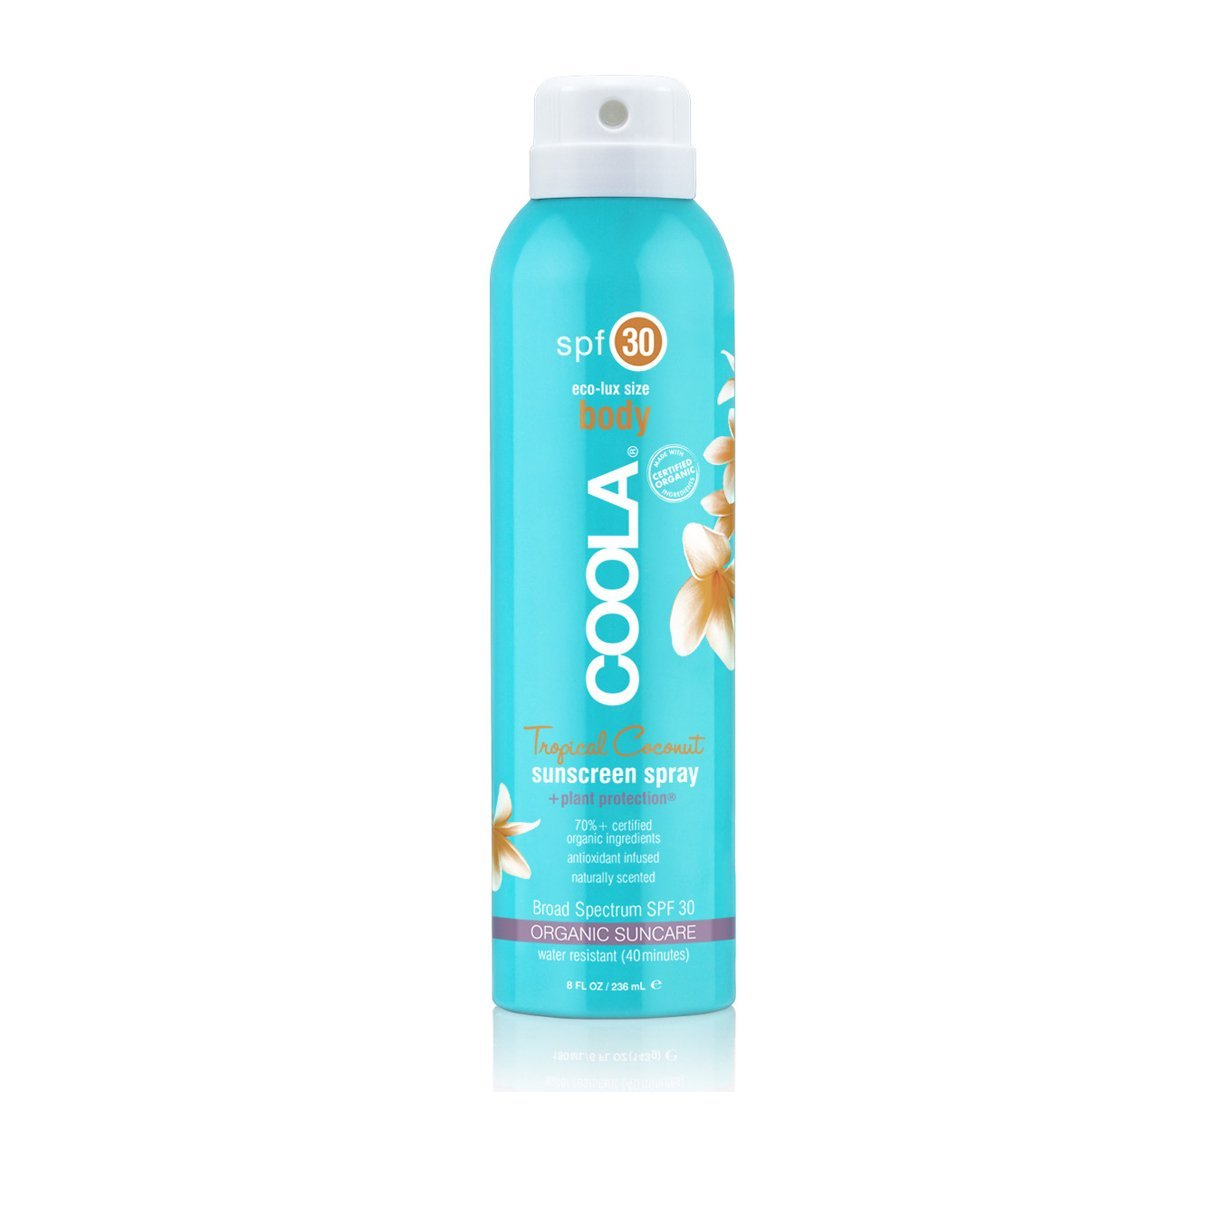 COOLA Classic Body SPF30 Unscented Sunscreen Spray - Tropical Coconut